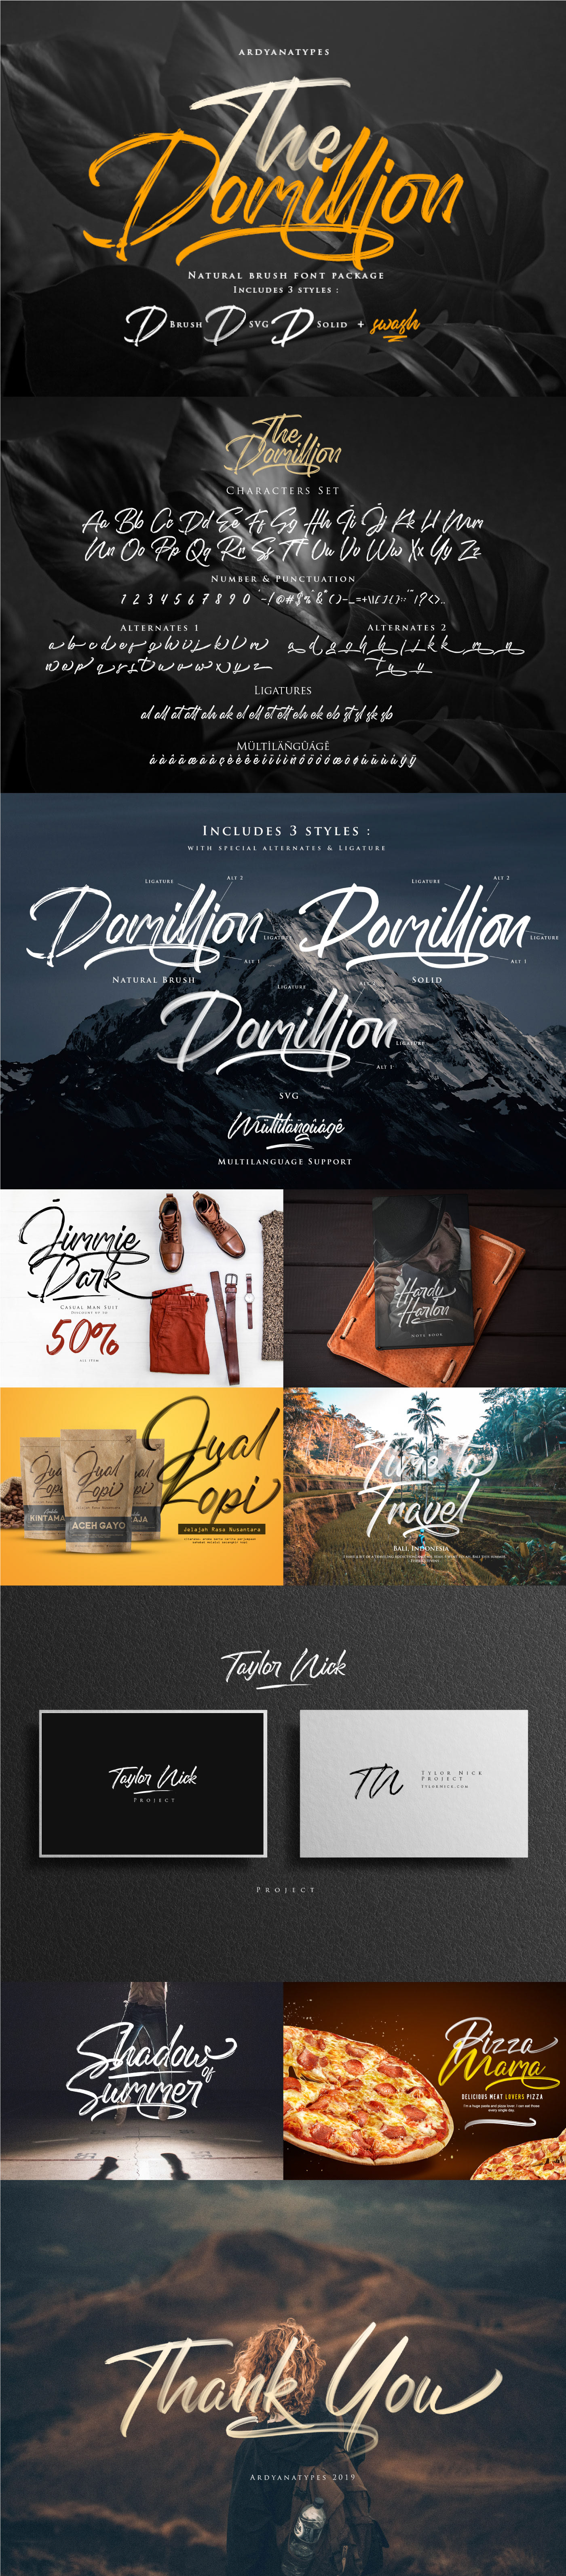 Free Download: The Domillion Brush Font - MightyDeals